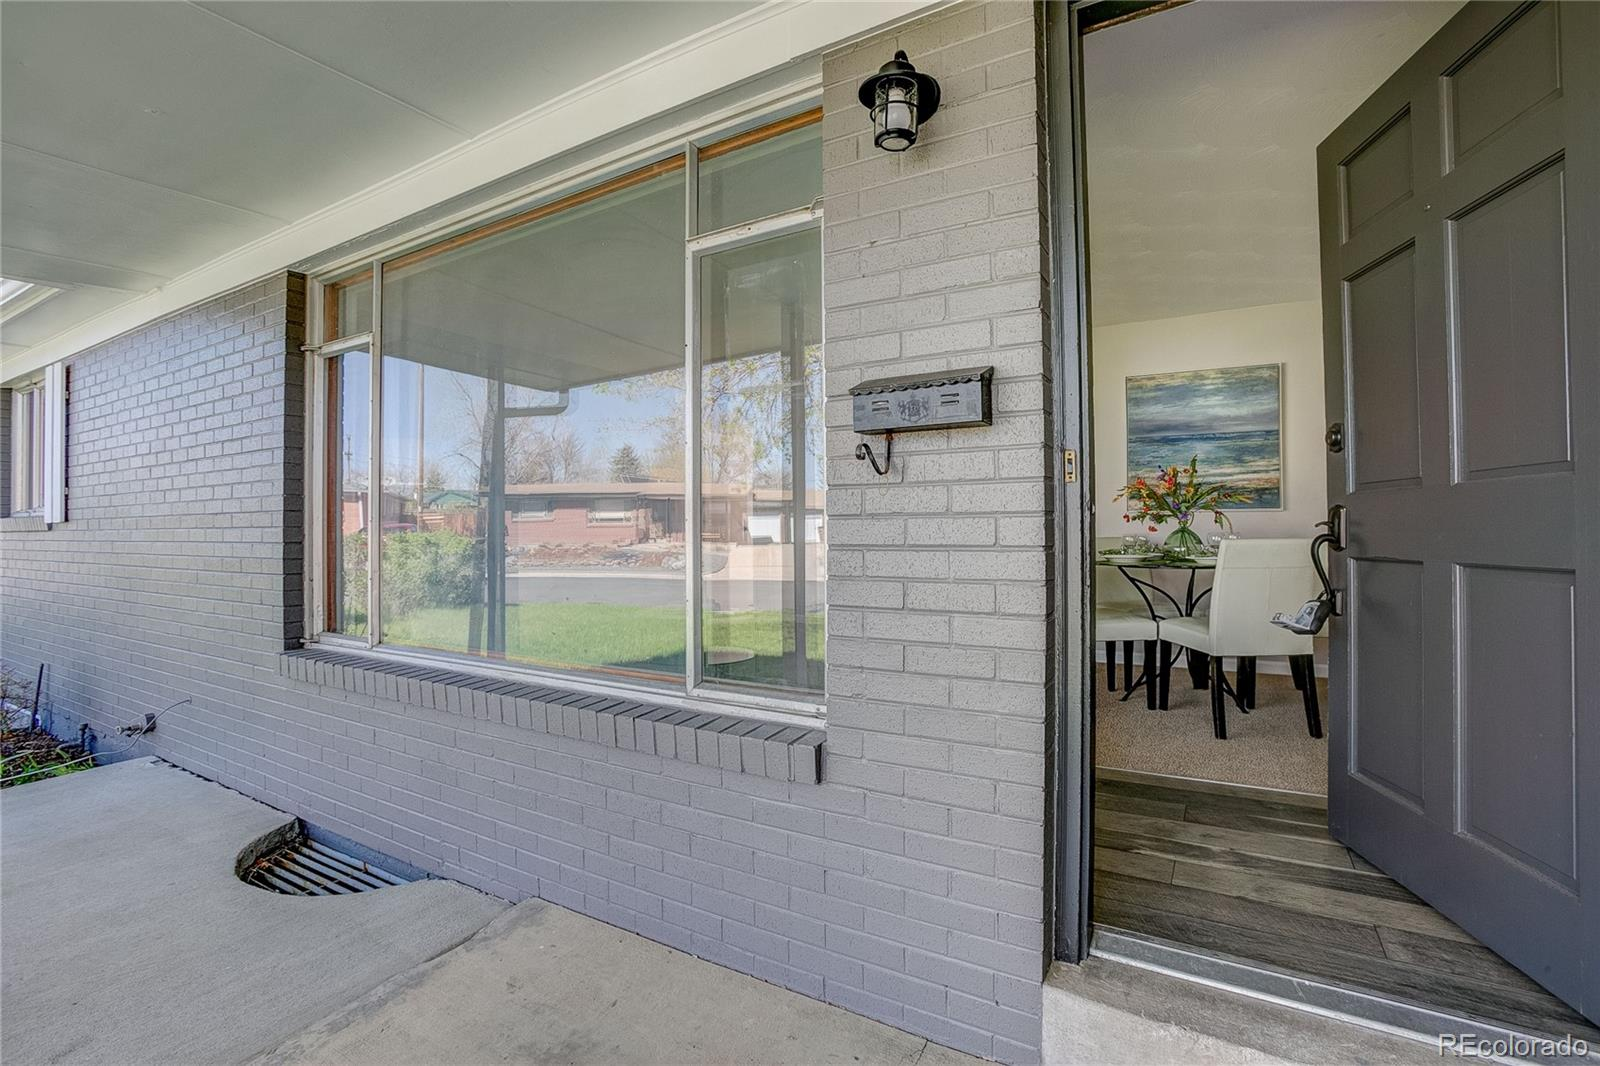 MLS# 9710462 - 2 - 1250 W 7th Ave Dr, Broomfield, CO 80020